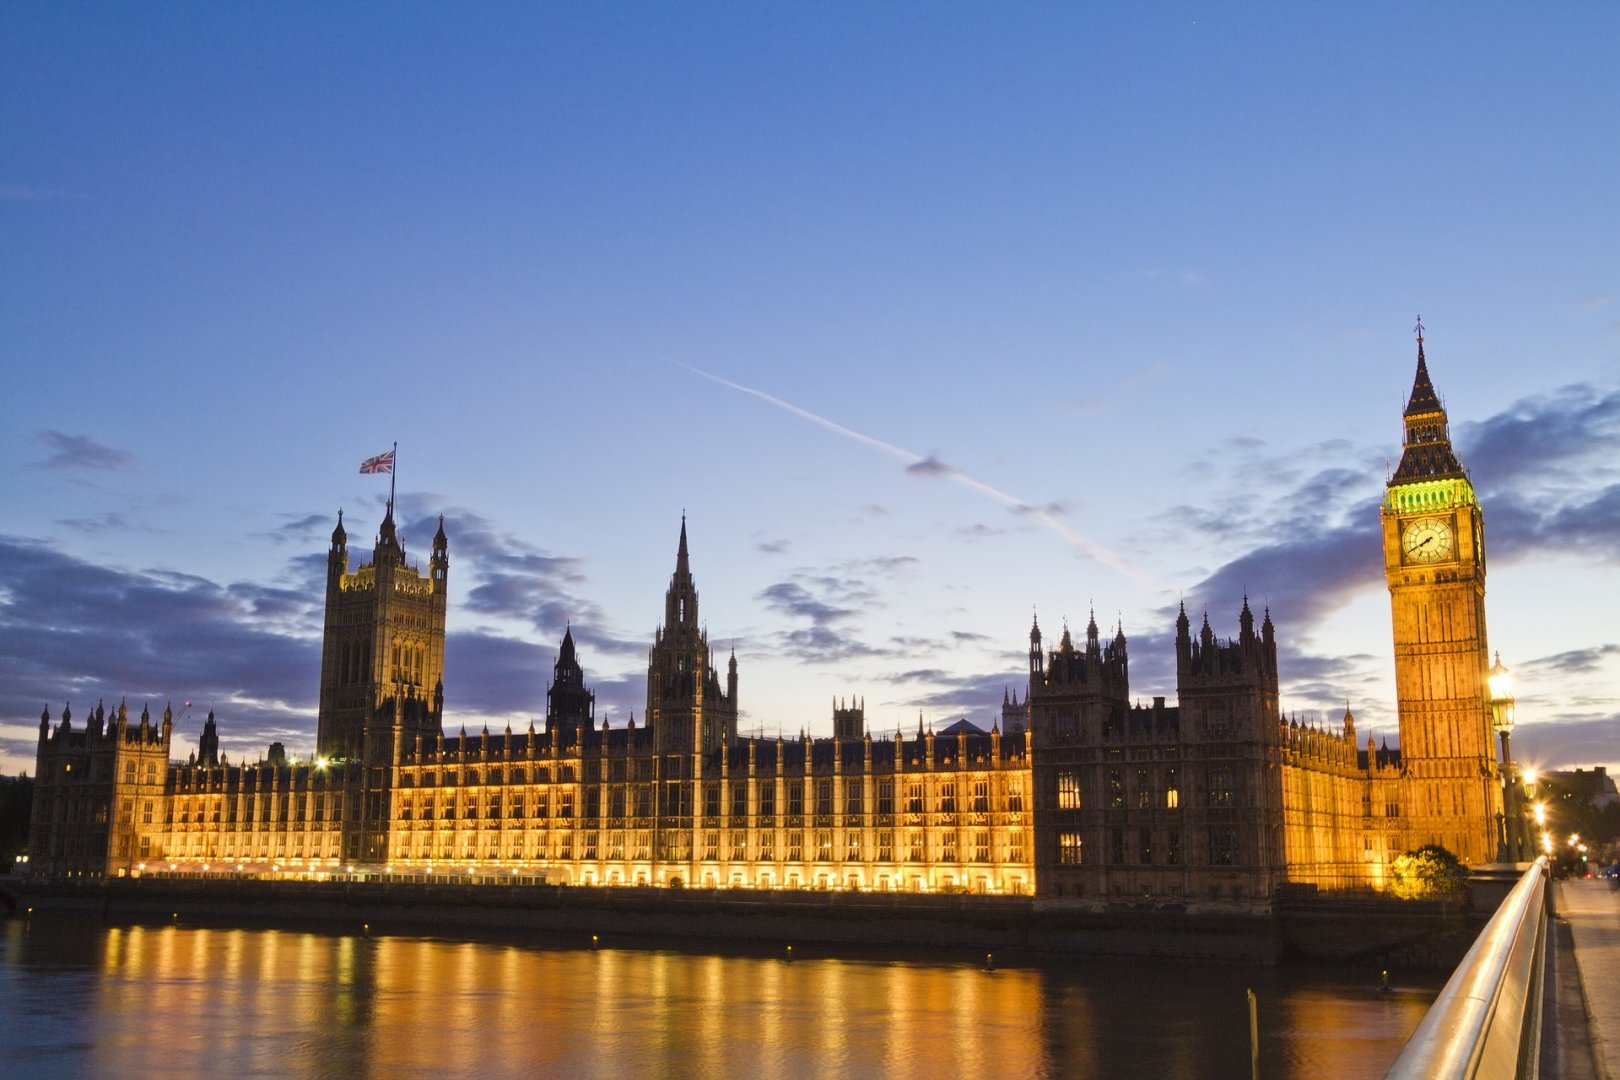 the uk parliament is increasingly dominated The principle of responsibility-to the electorate and the parliament-is a vital one which must be maintained and strengthened because it is the basis of popular control over the direction of government and the destiny of the nation.